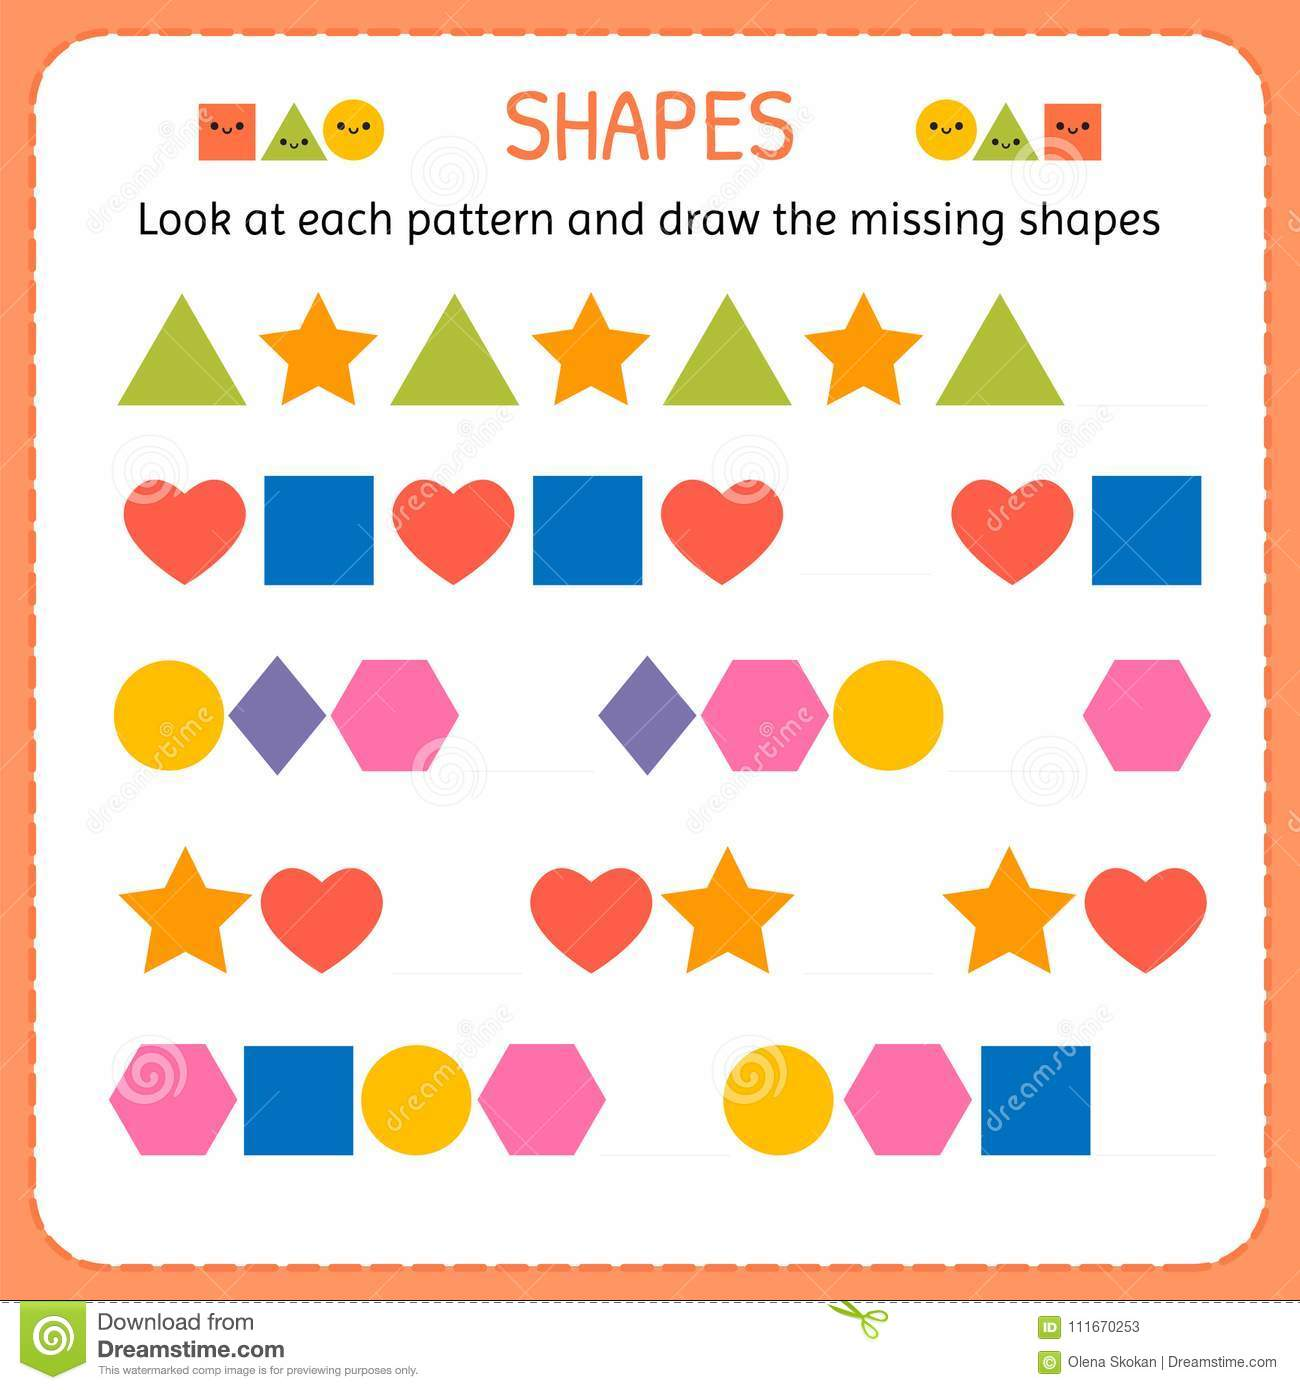 Look At Each Pattern And Draw The Missing Shapes Learn Shapes And Geometric Figures Preschool